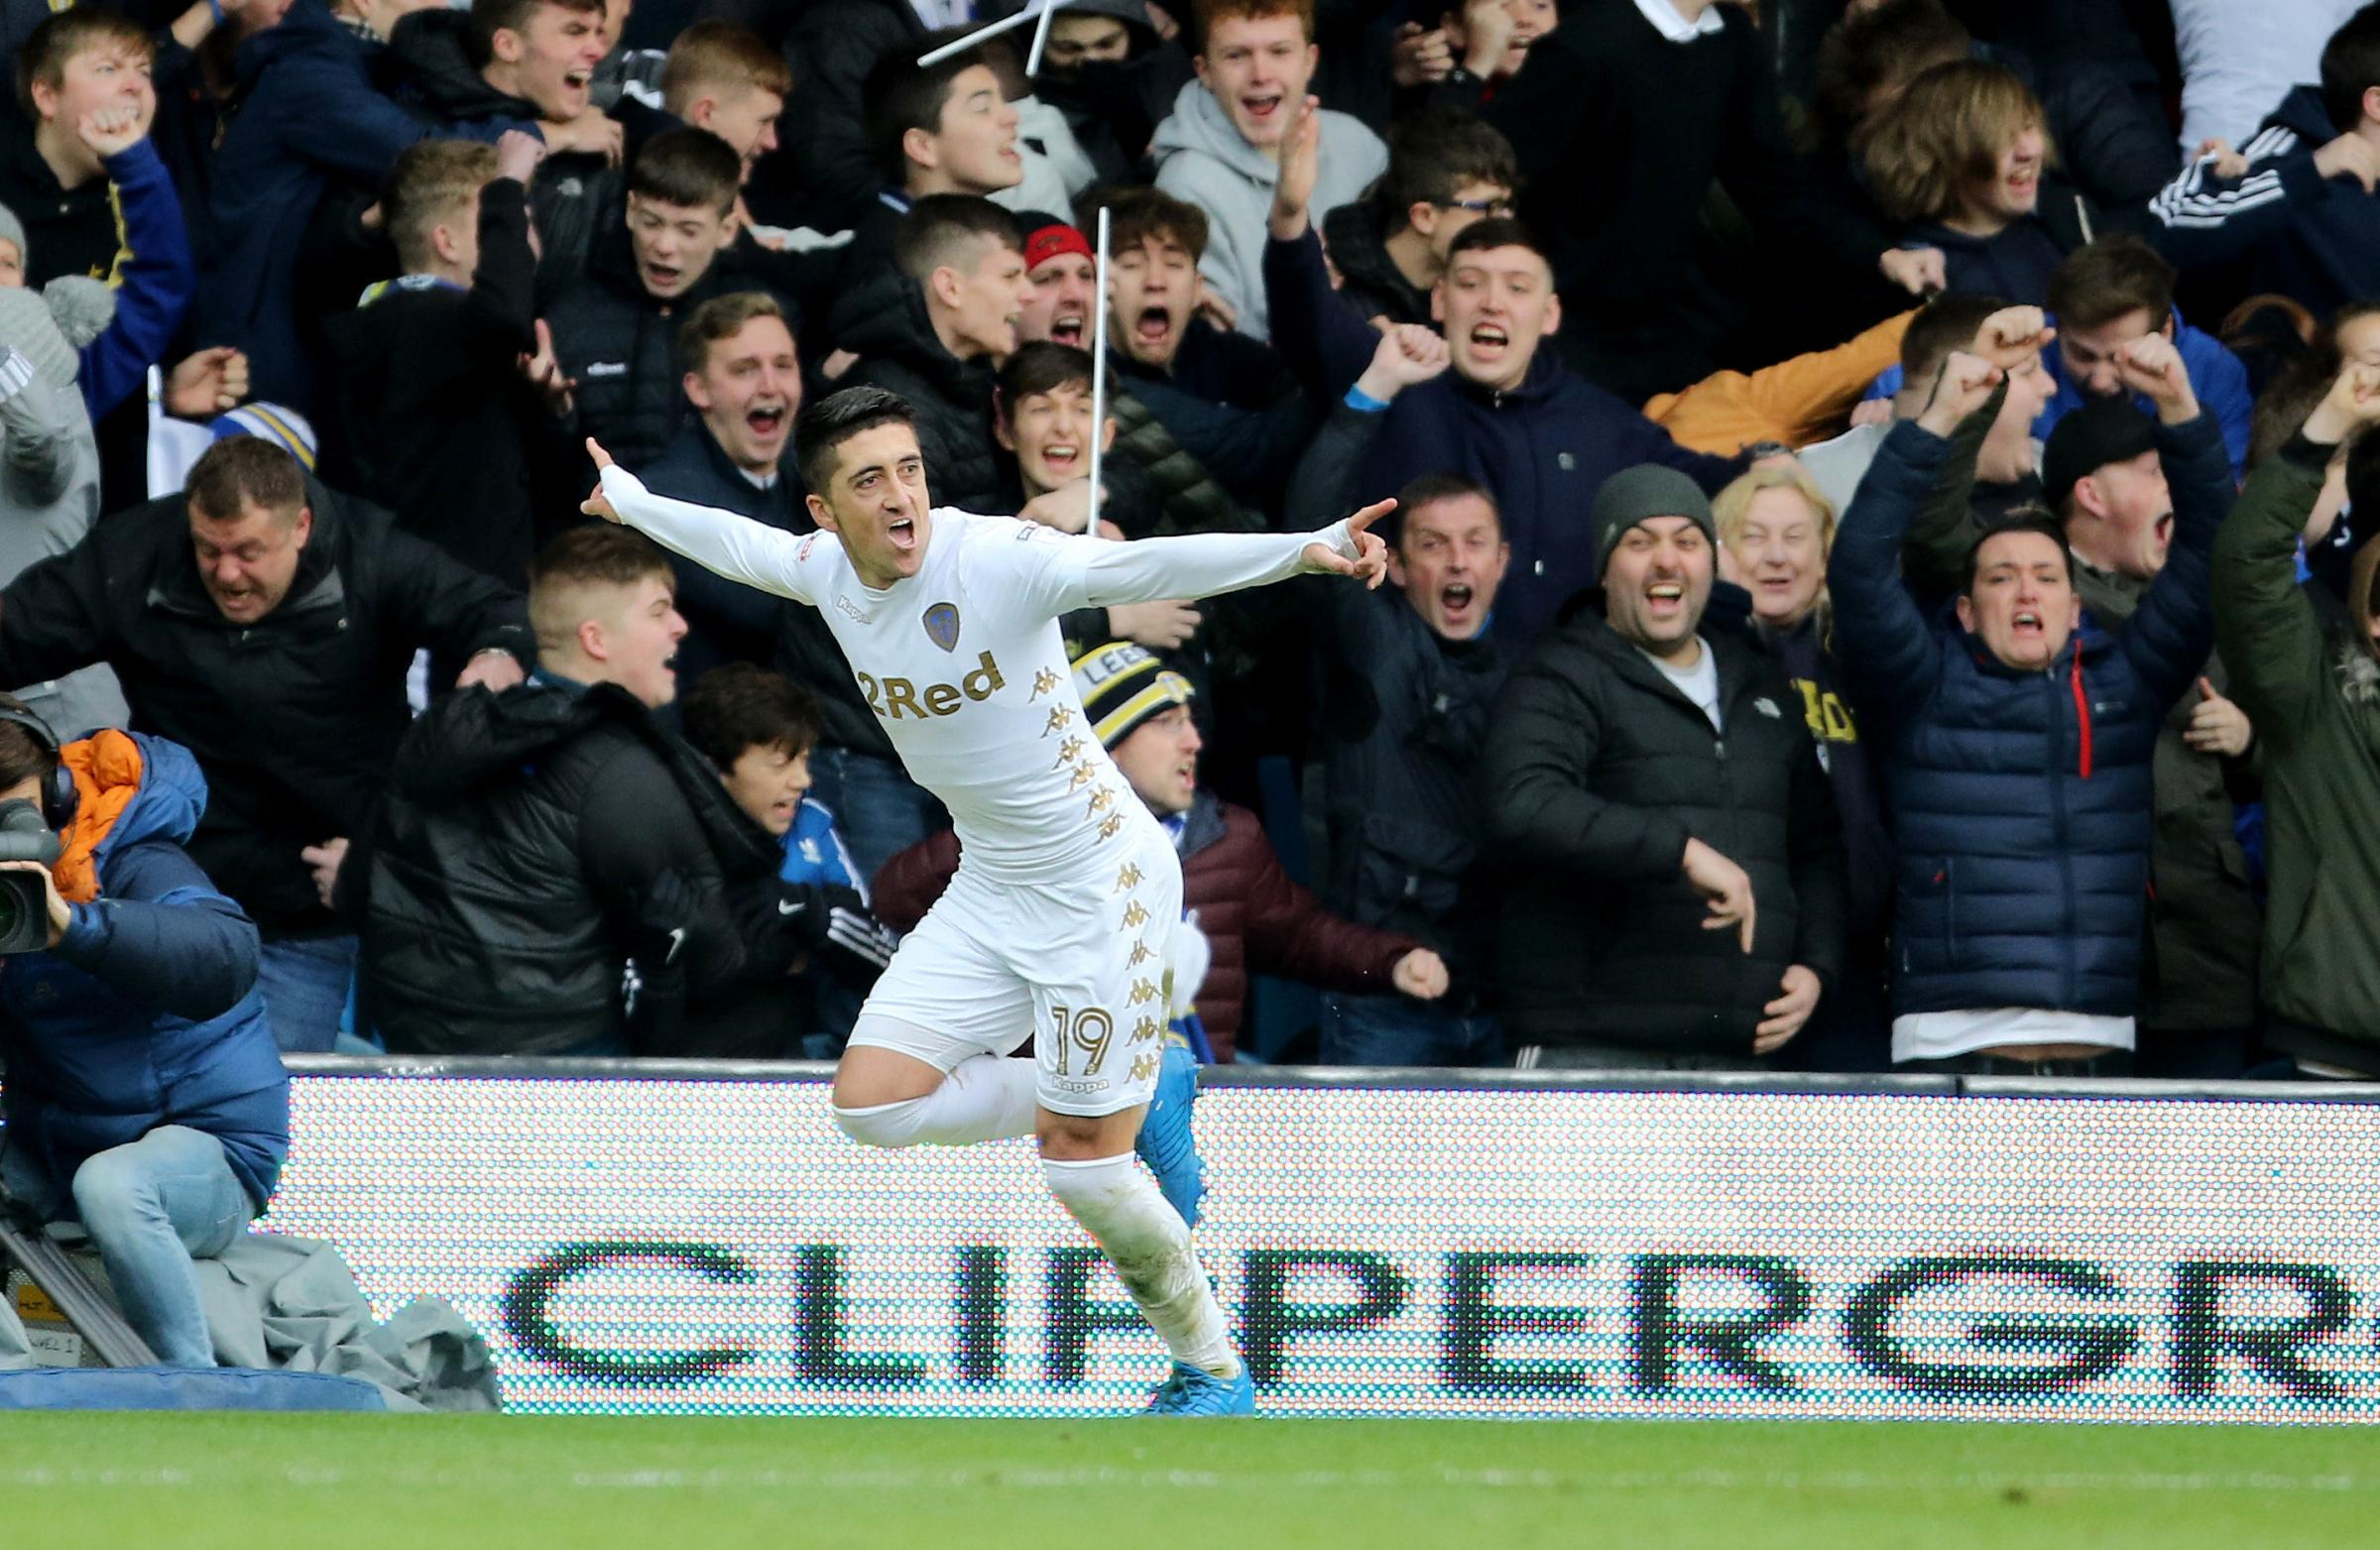 Pablo Hernandez equalised for Leeds with a 61st-minute free-kick – Picture: Richard Sellers/PA Wire